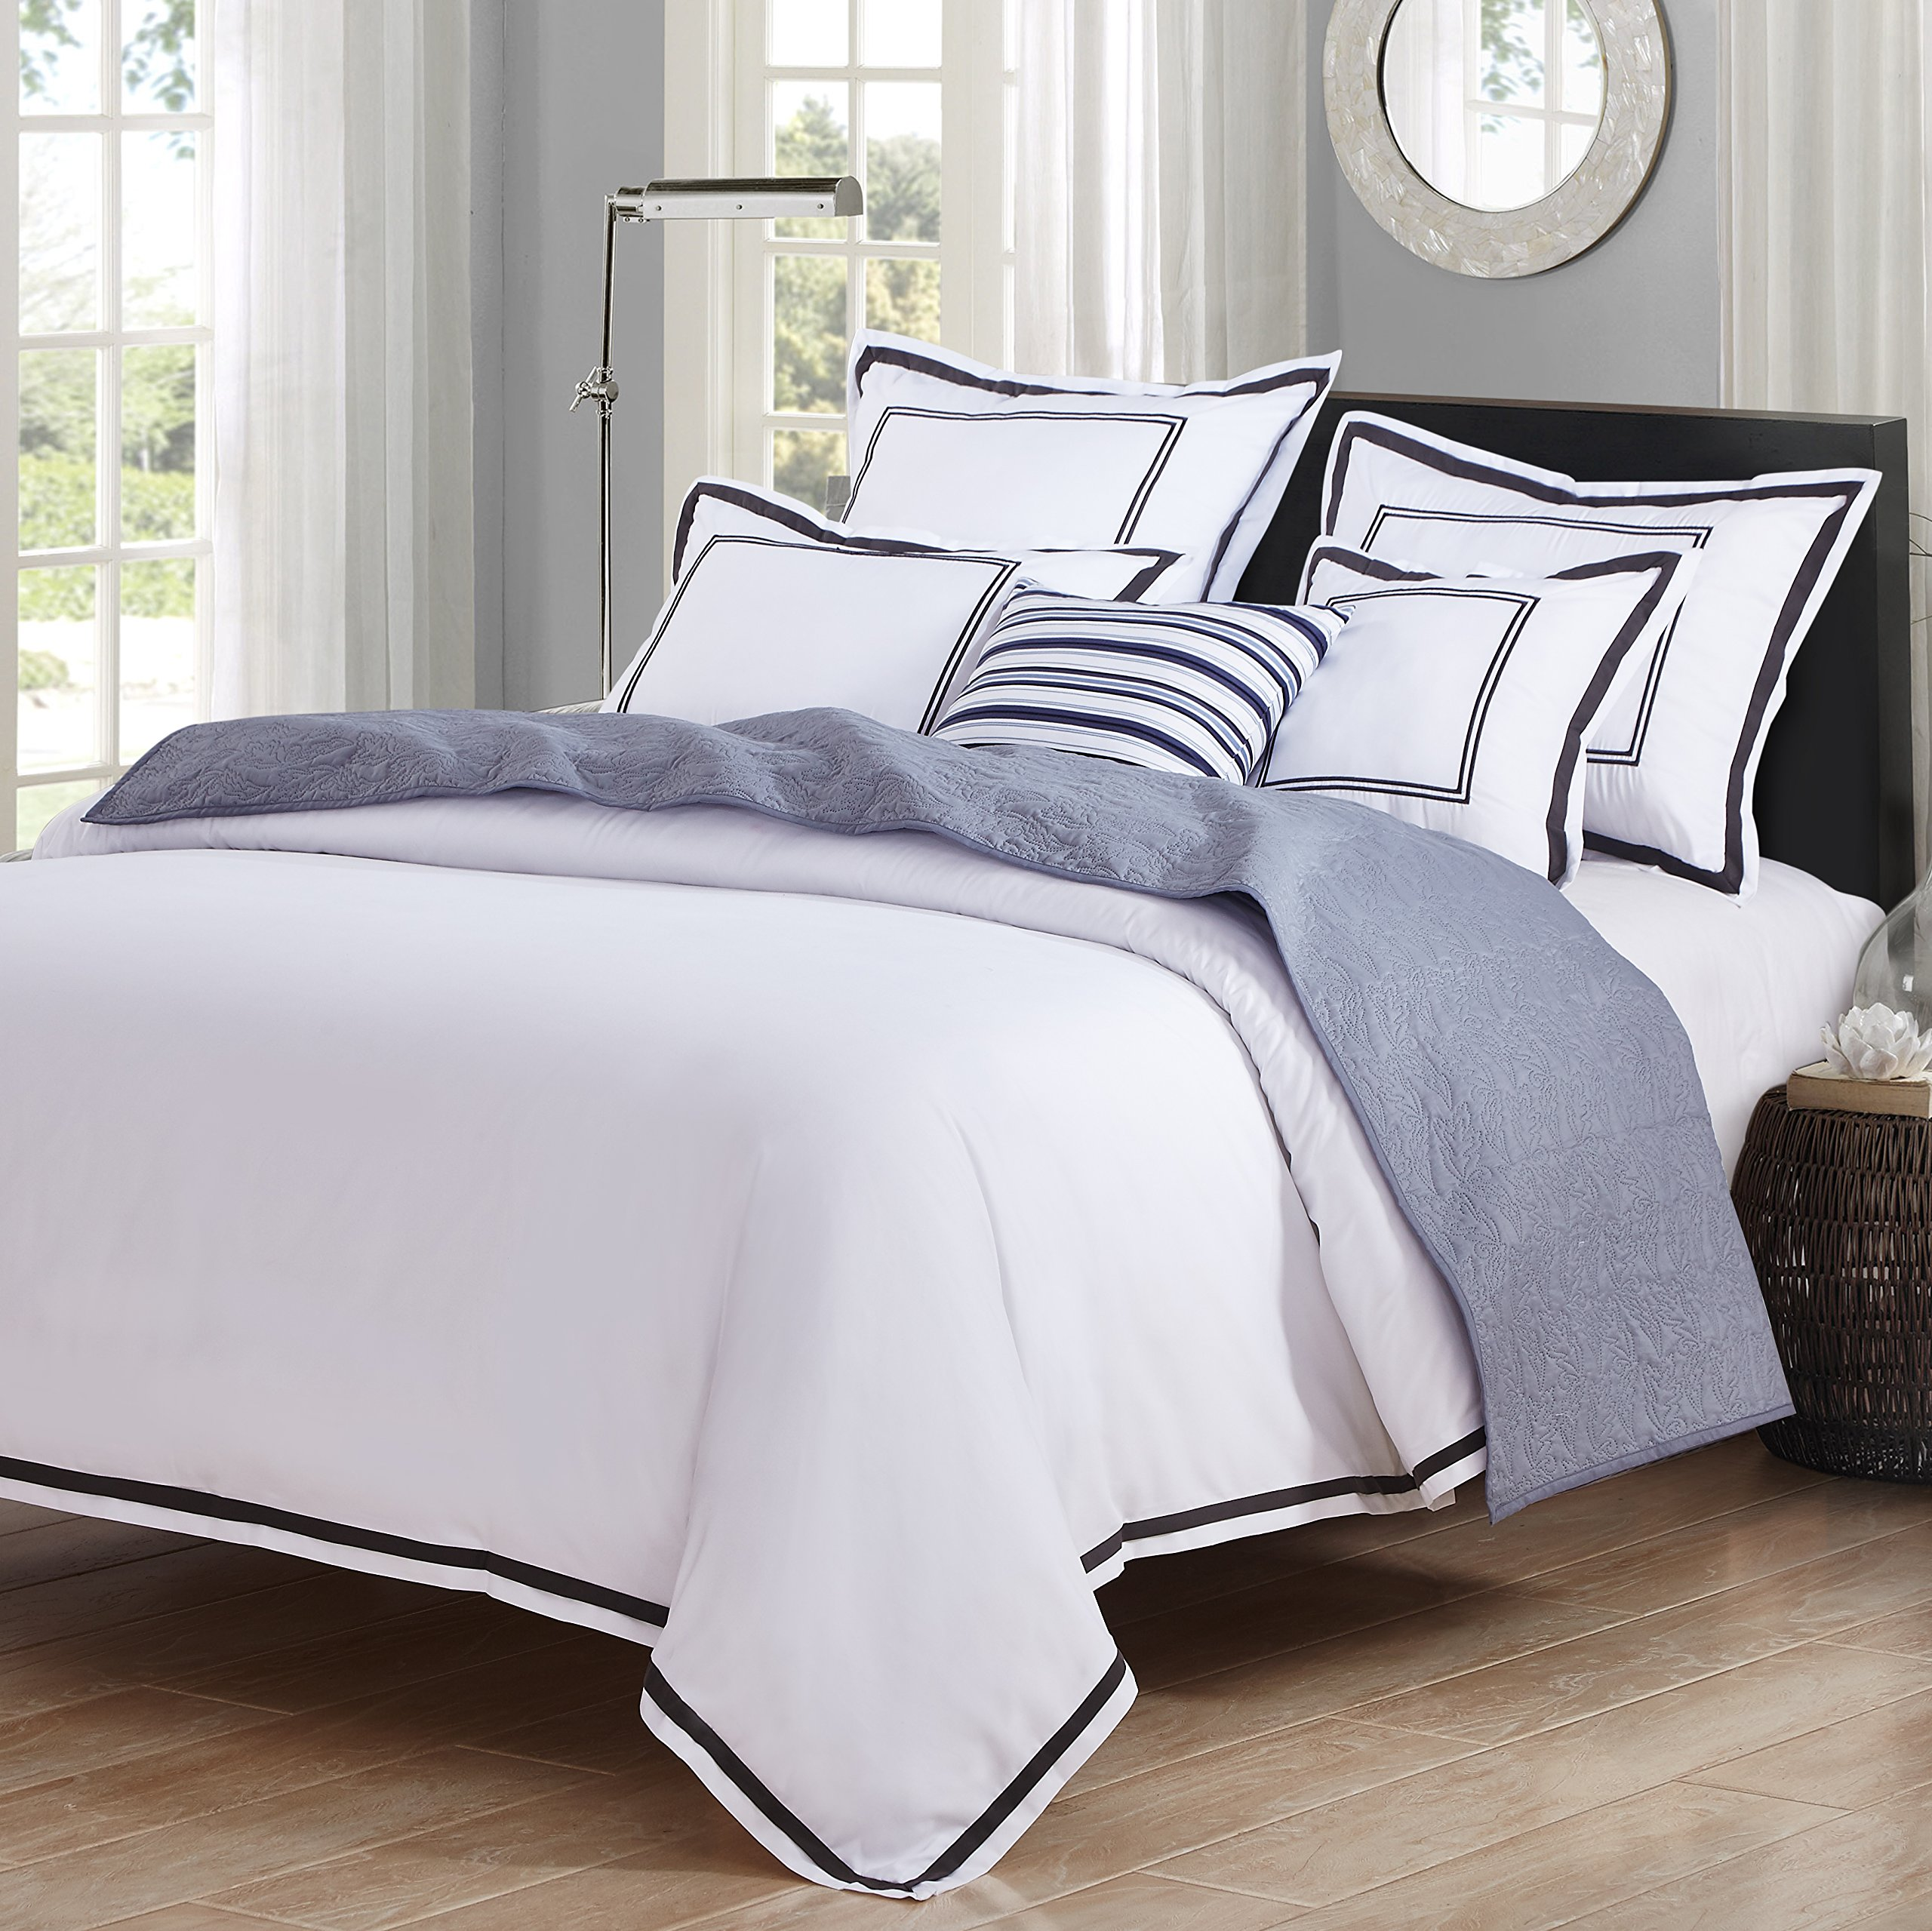 Hotel Luxury 3pc Duvet Cover Set- Elegant White/Black Trim Hotel Quality Design- Wrinkle & Fade Resistant Bedding - King/Cal King